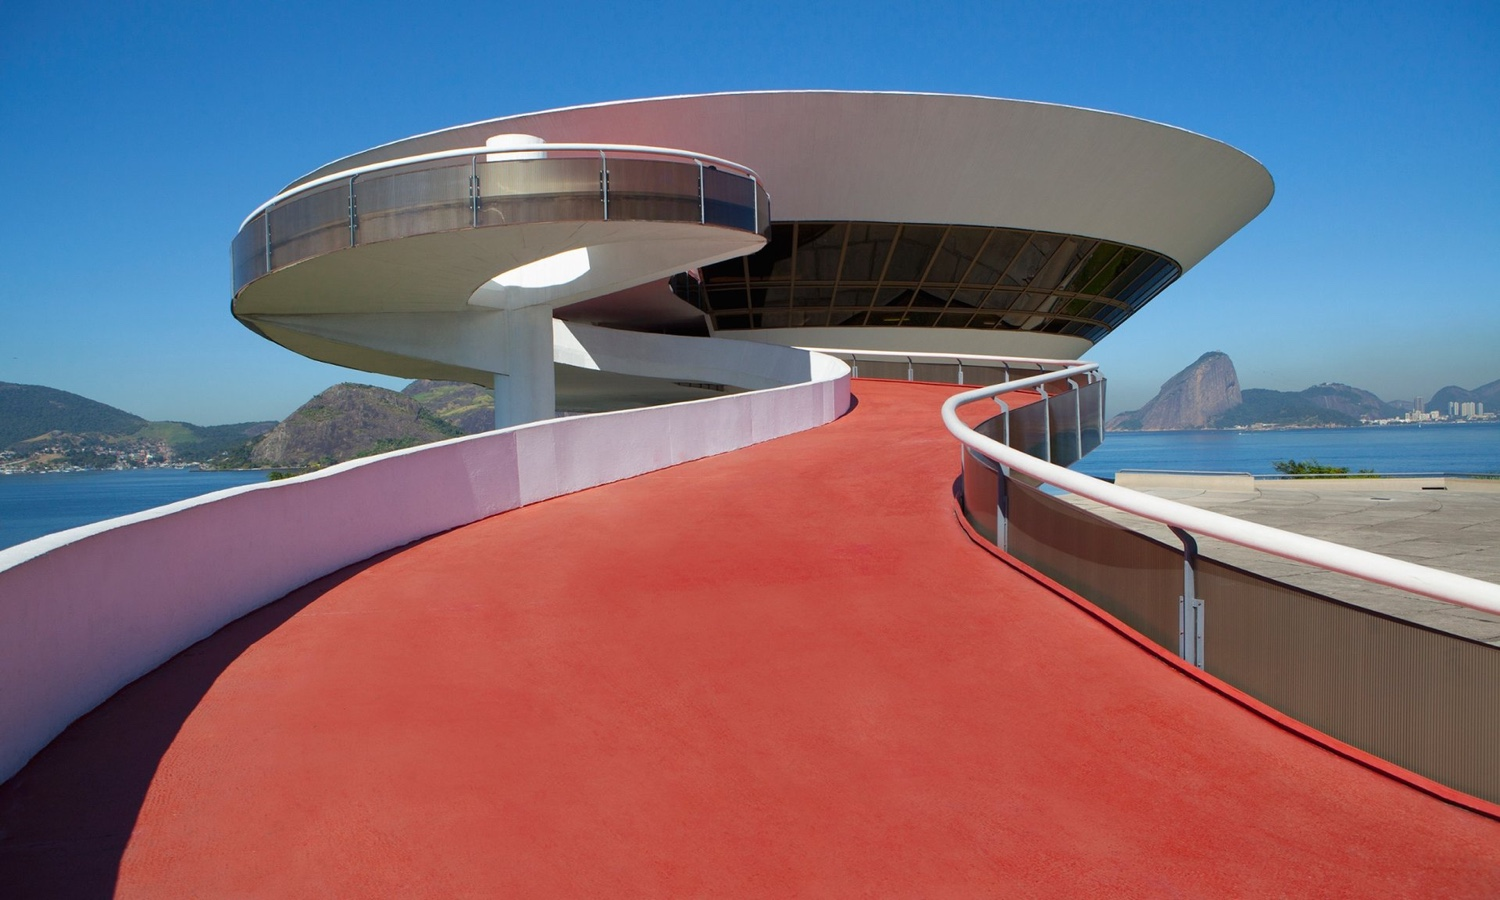 Niterói Contemporary Art Museum. Photo © 2016 Guardian News and Media Limited.